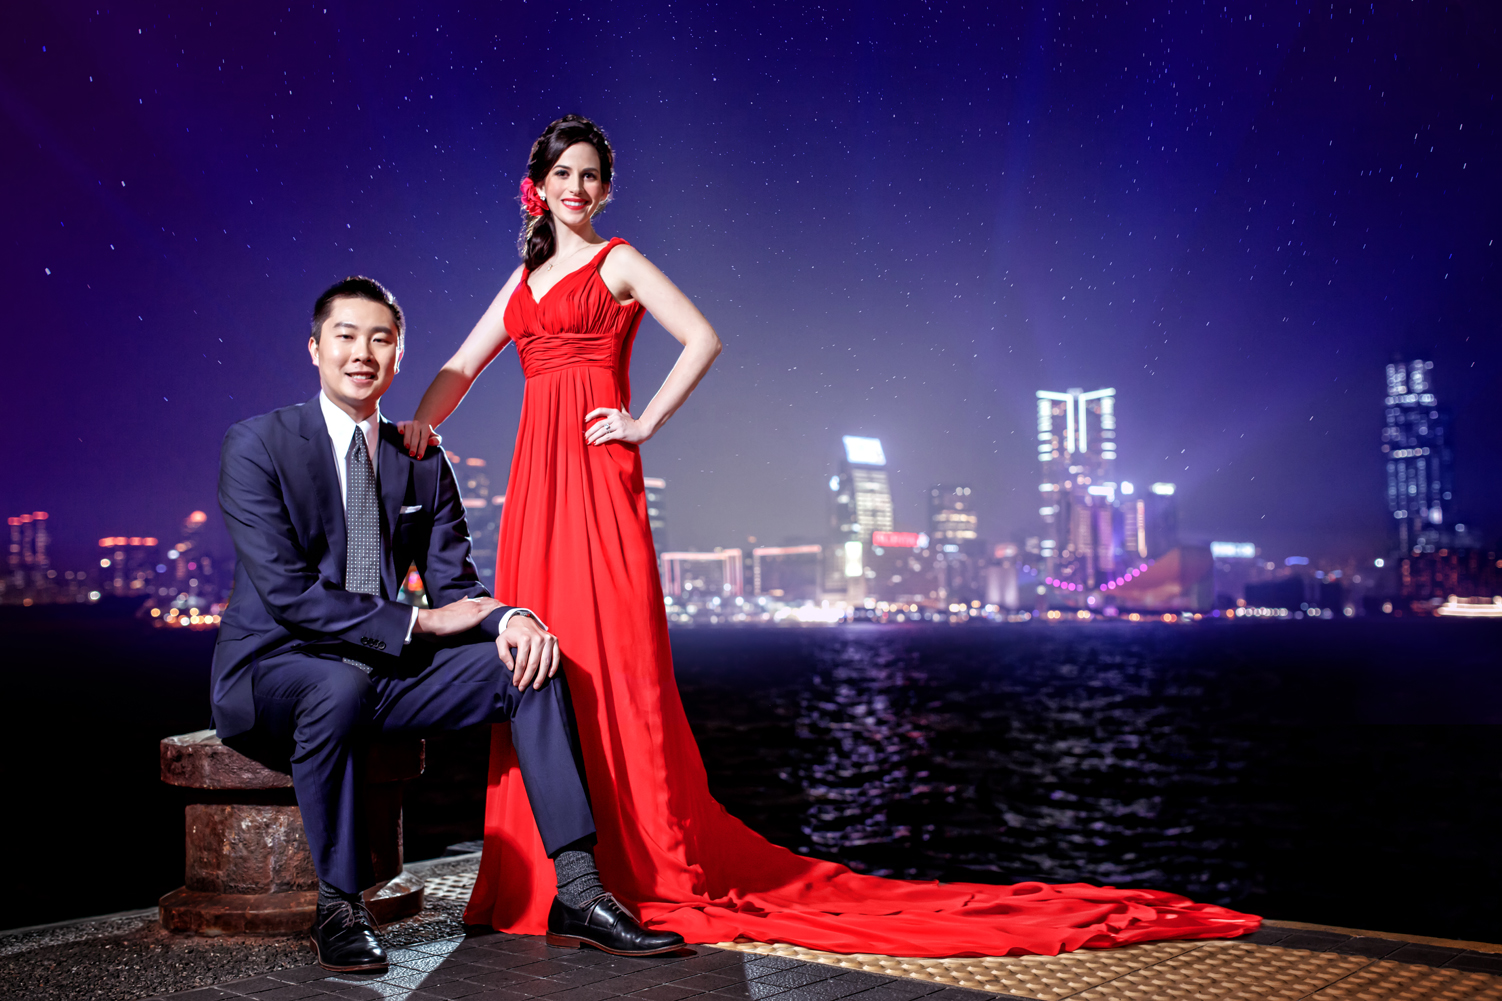 Las Vegas Wedding Planner Andrea Eppolito shares these Hong Kong Engagement Photos taken by  Aperture Photo . Sexy red gown.